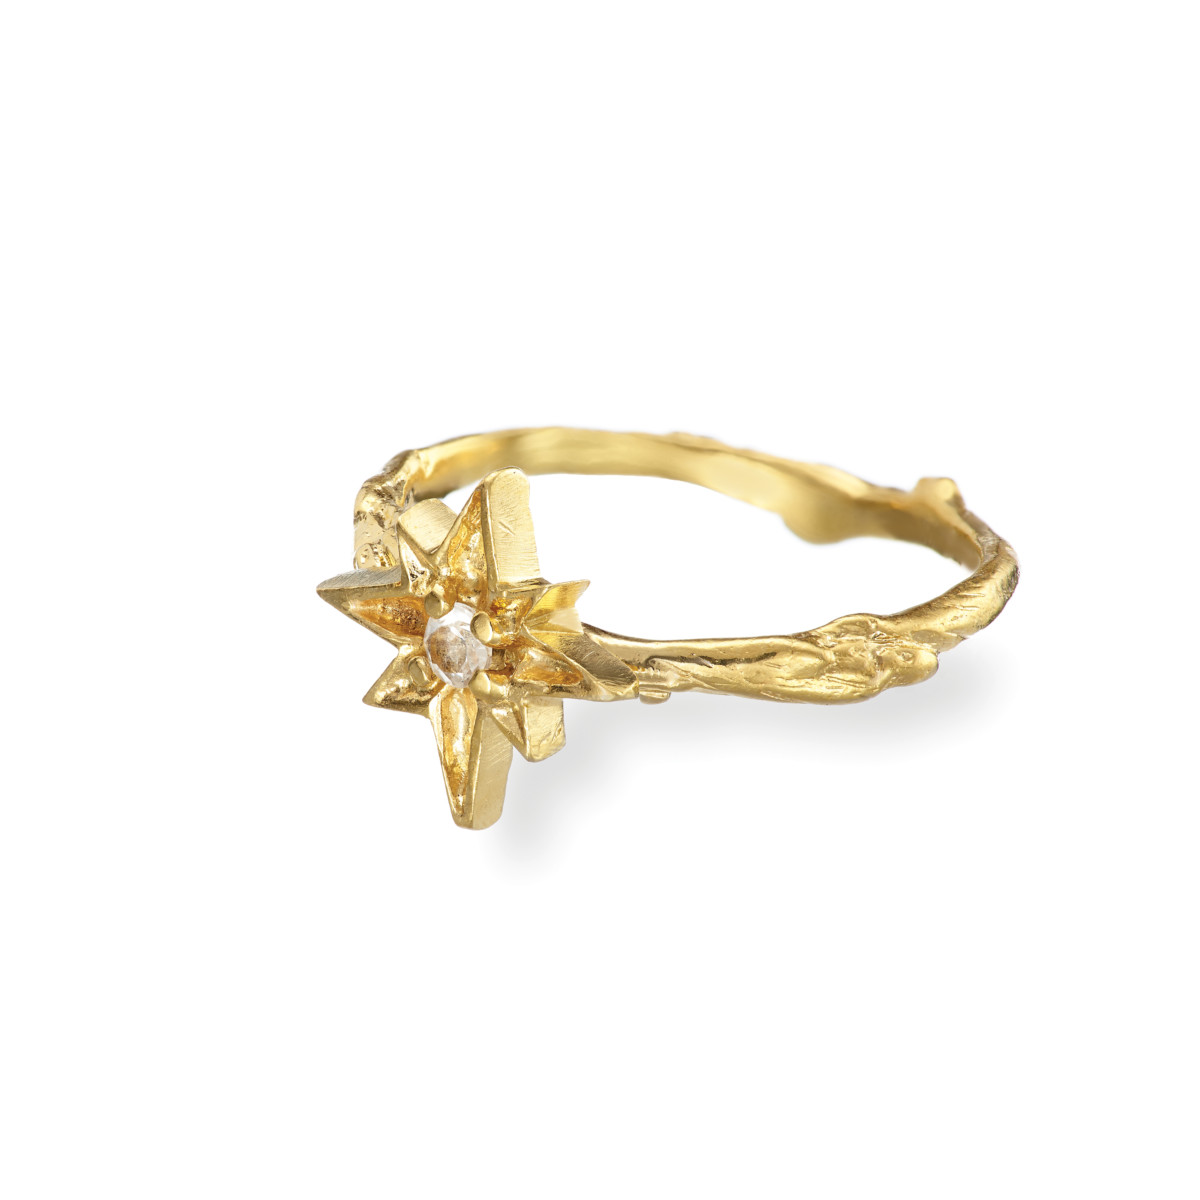 Chupi-Gold-Ring-I'd-be-lost-without-you-2